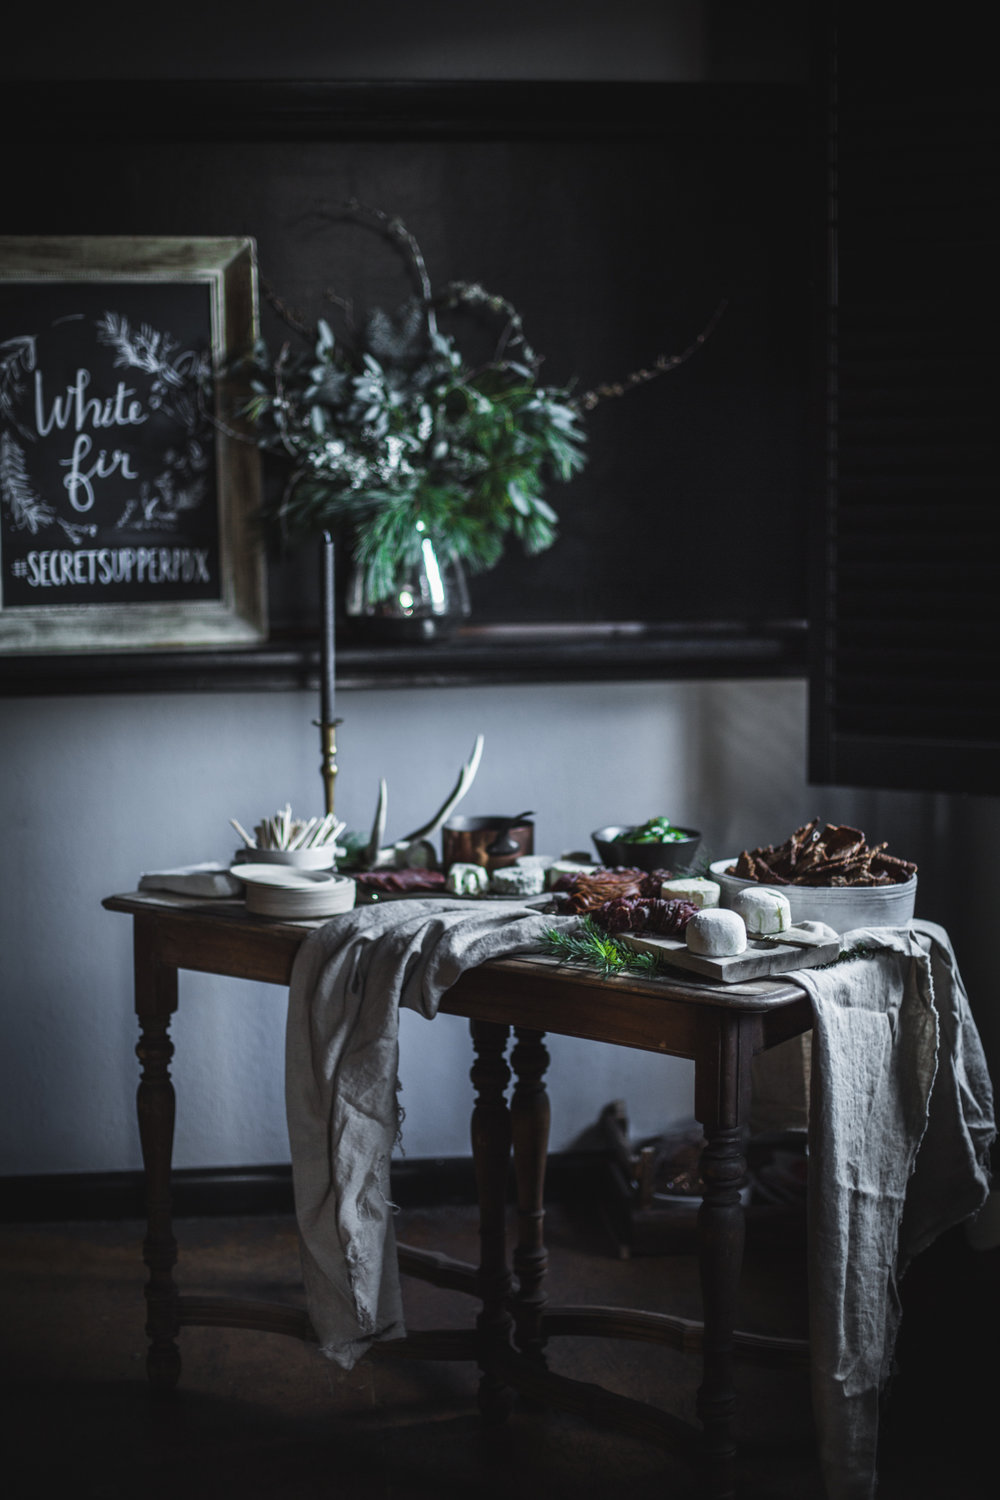 Secret Supper White Fir by Eva Kosmas Flores-33.jpg